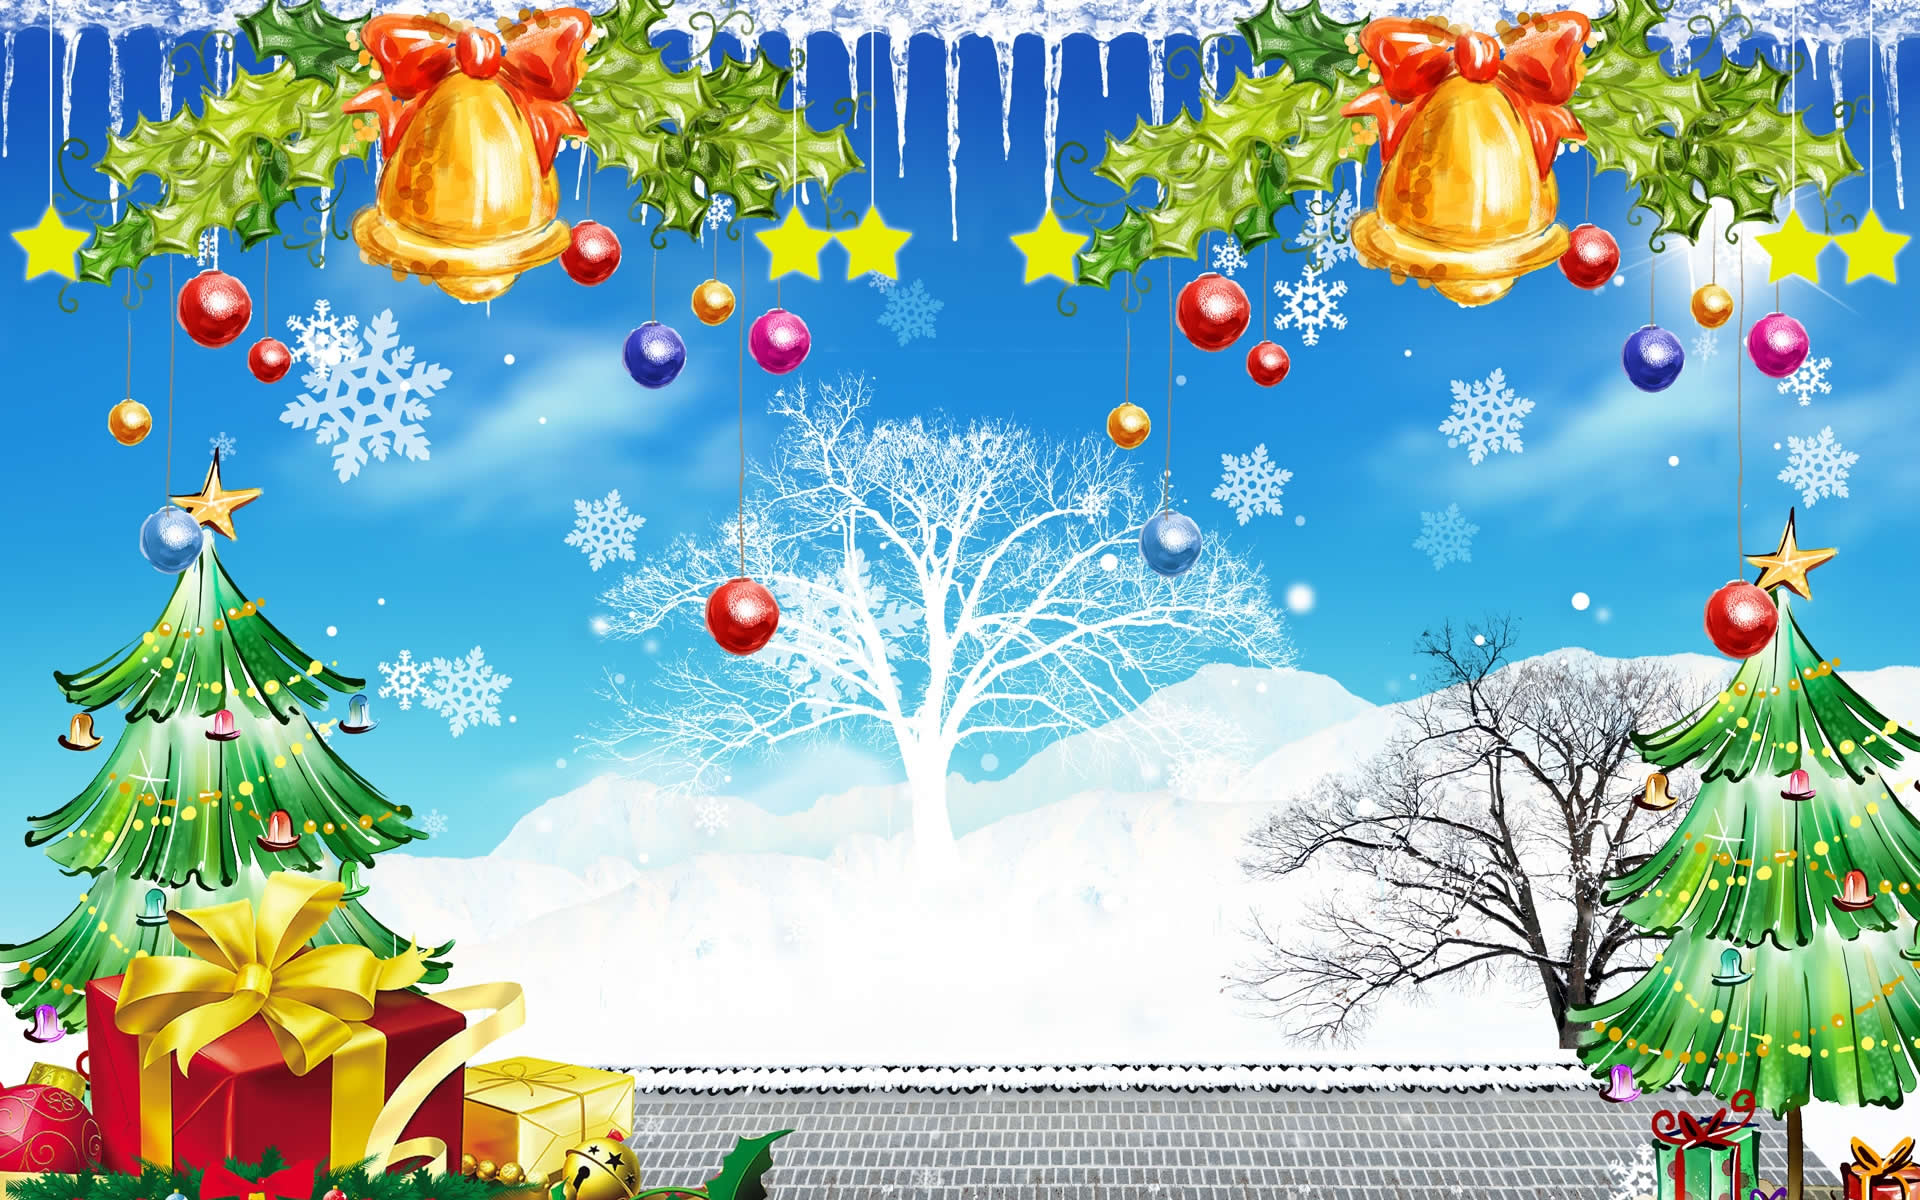 Beautiful christmas wallpapers revealed by daily gossip - Free christmas images for desktop wallpaper ...